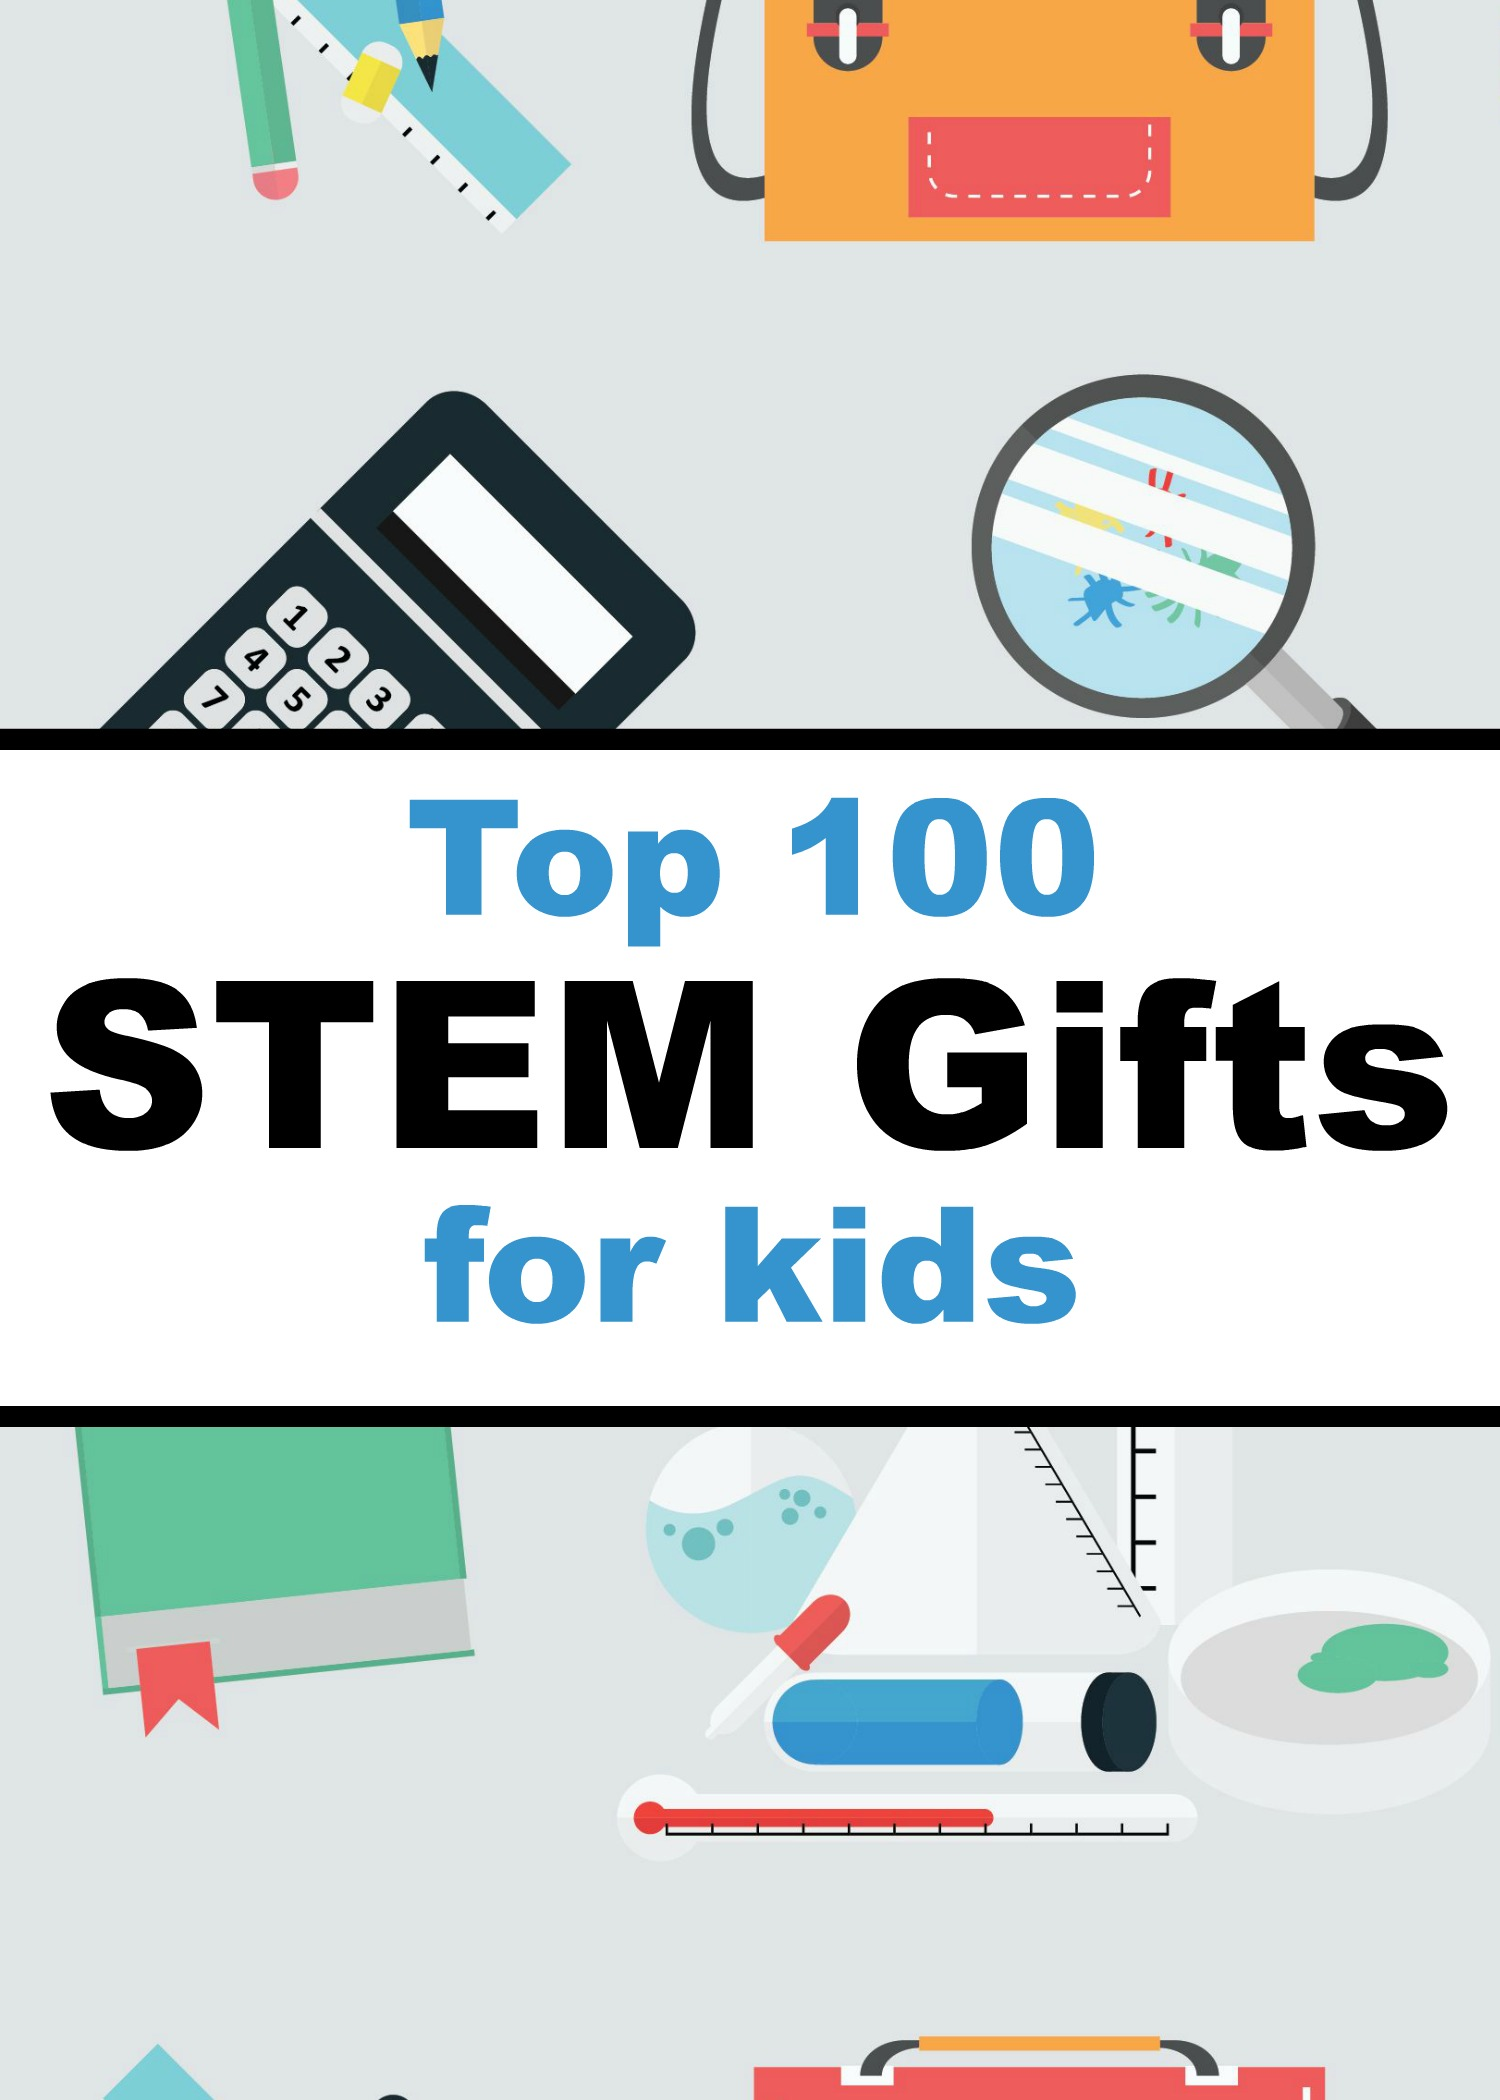 Top 100 STEM Gifts for Kids